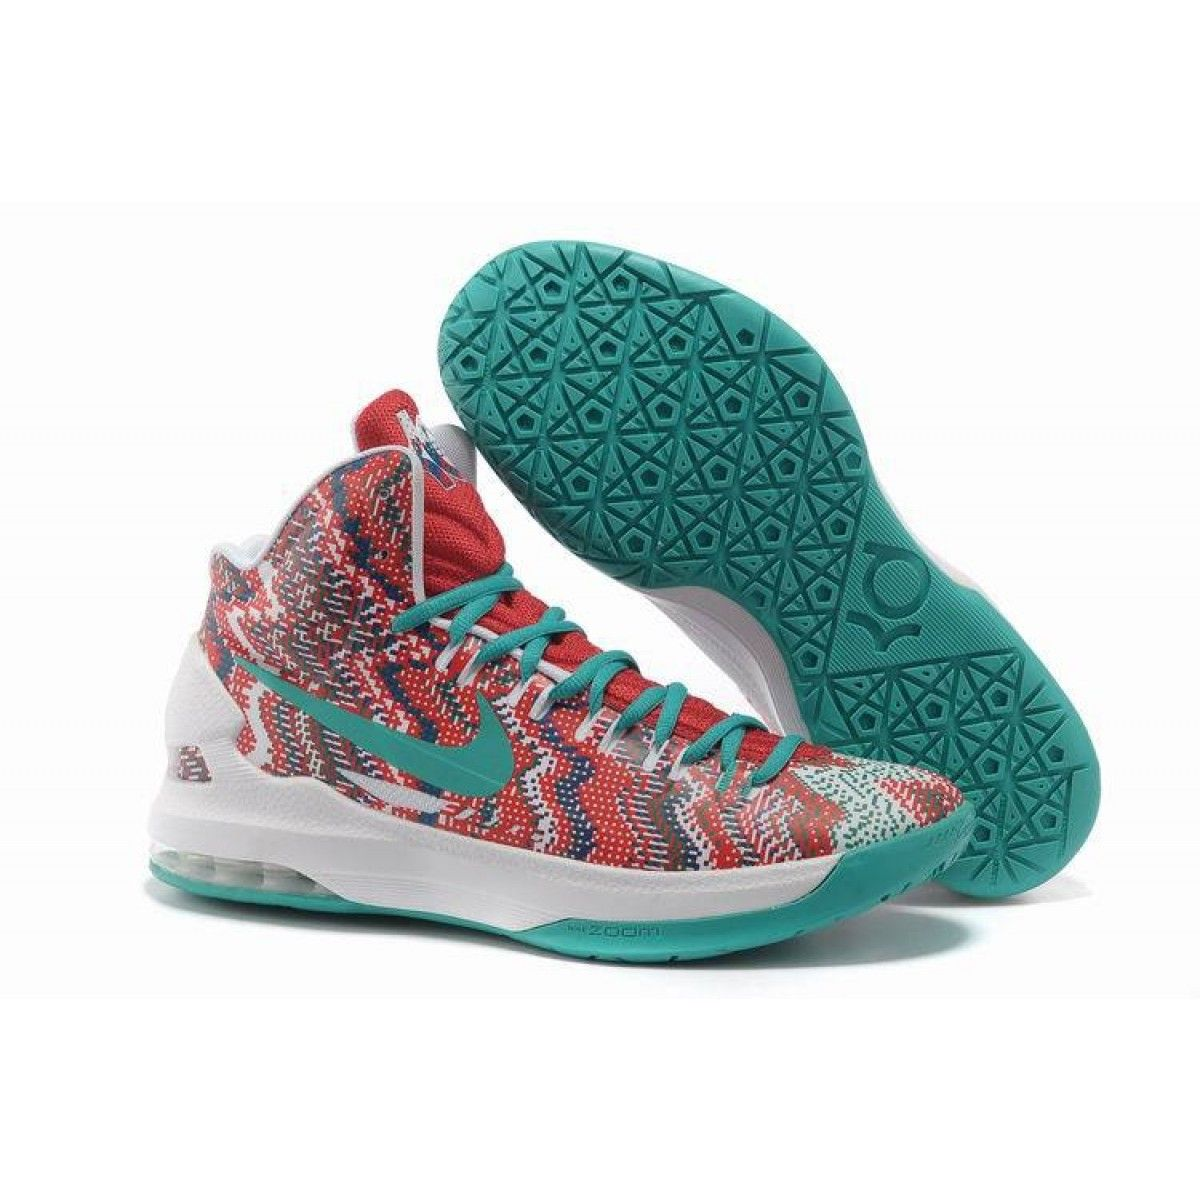 new style 7bfd3 17f3d Women s Nike Zoom Kevin Durant s KD V Basketball shoes Christmas .